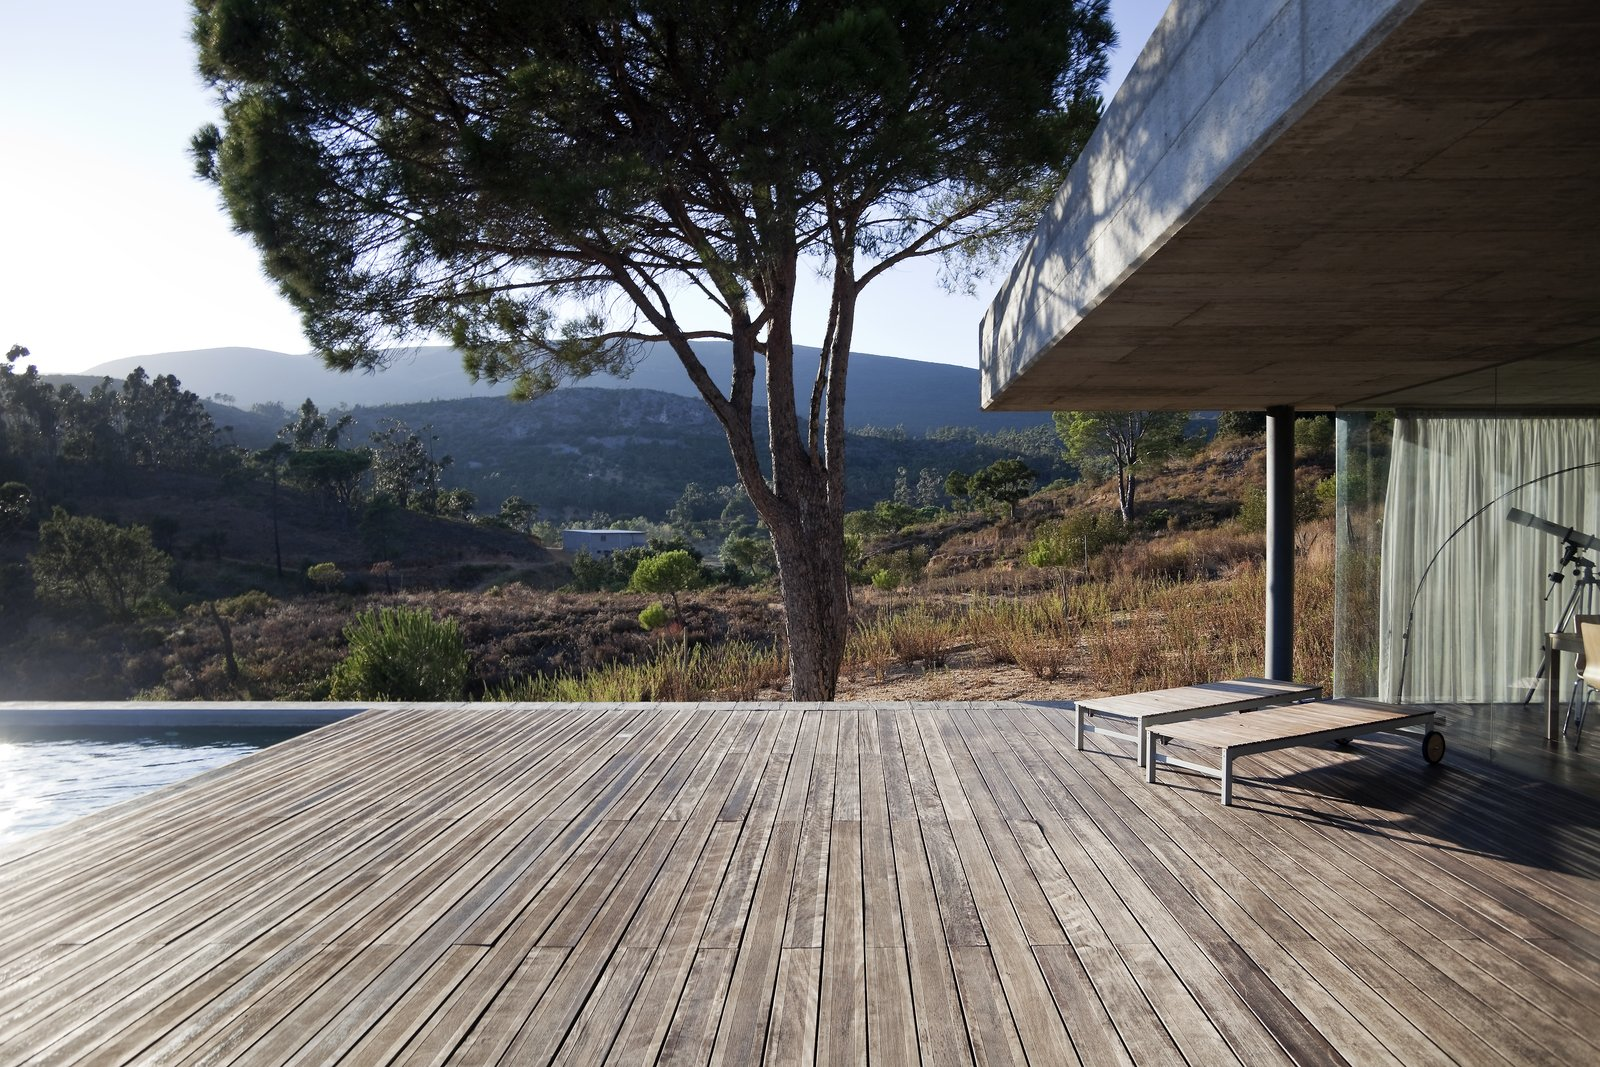 Outdoor, Wood Patio, Porch, Deck, Trees, Large Pools, Tubs, Shower, Back Yard, and Large Patio, Porch, Deck  House in Pedrogão